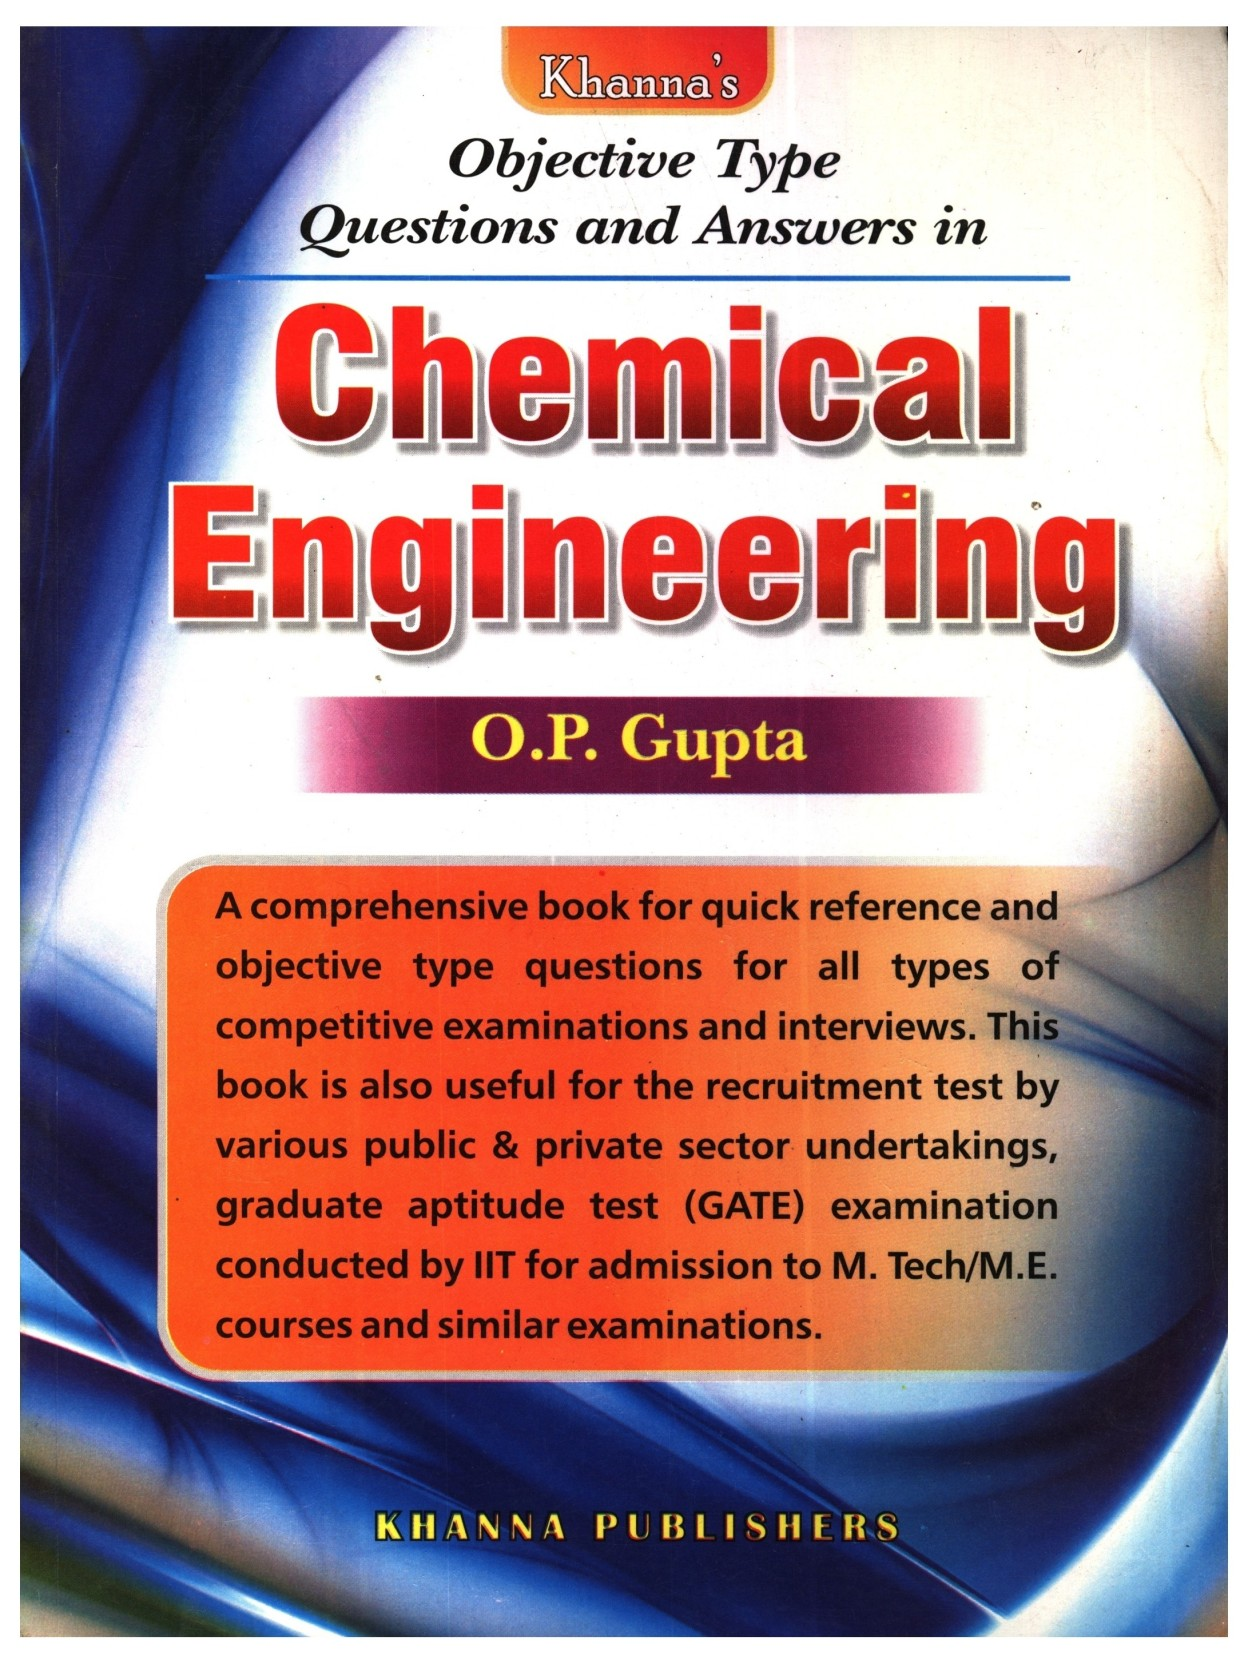 op gupta chemical engineering  objectives type    chemicalpdf